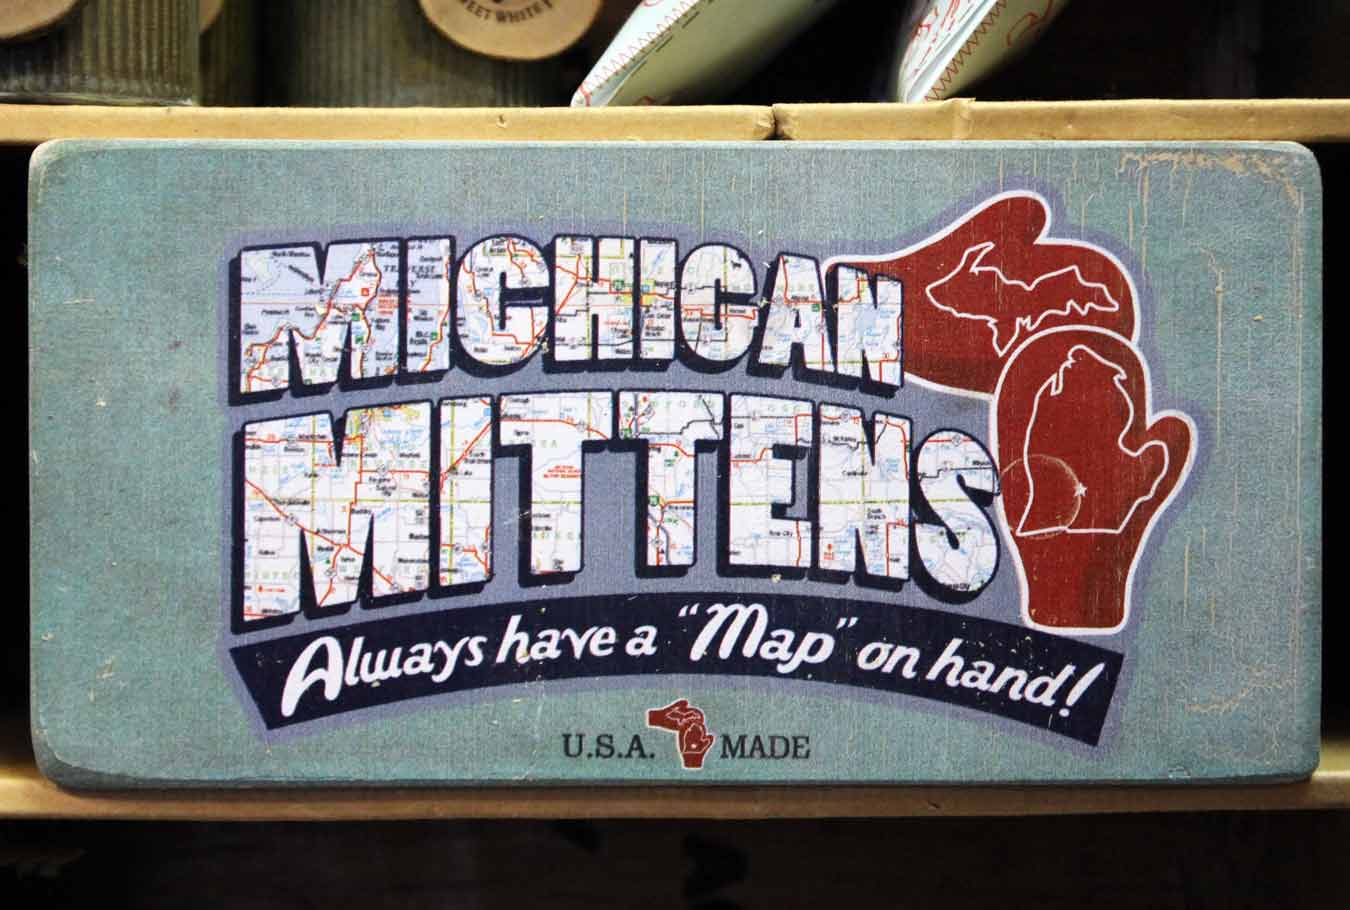 Wading-In-Big-Shoes-Michigan-Mittens-5